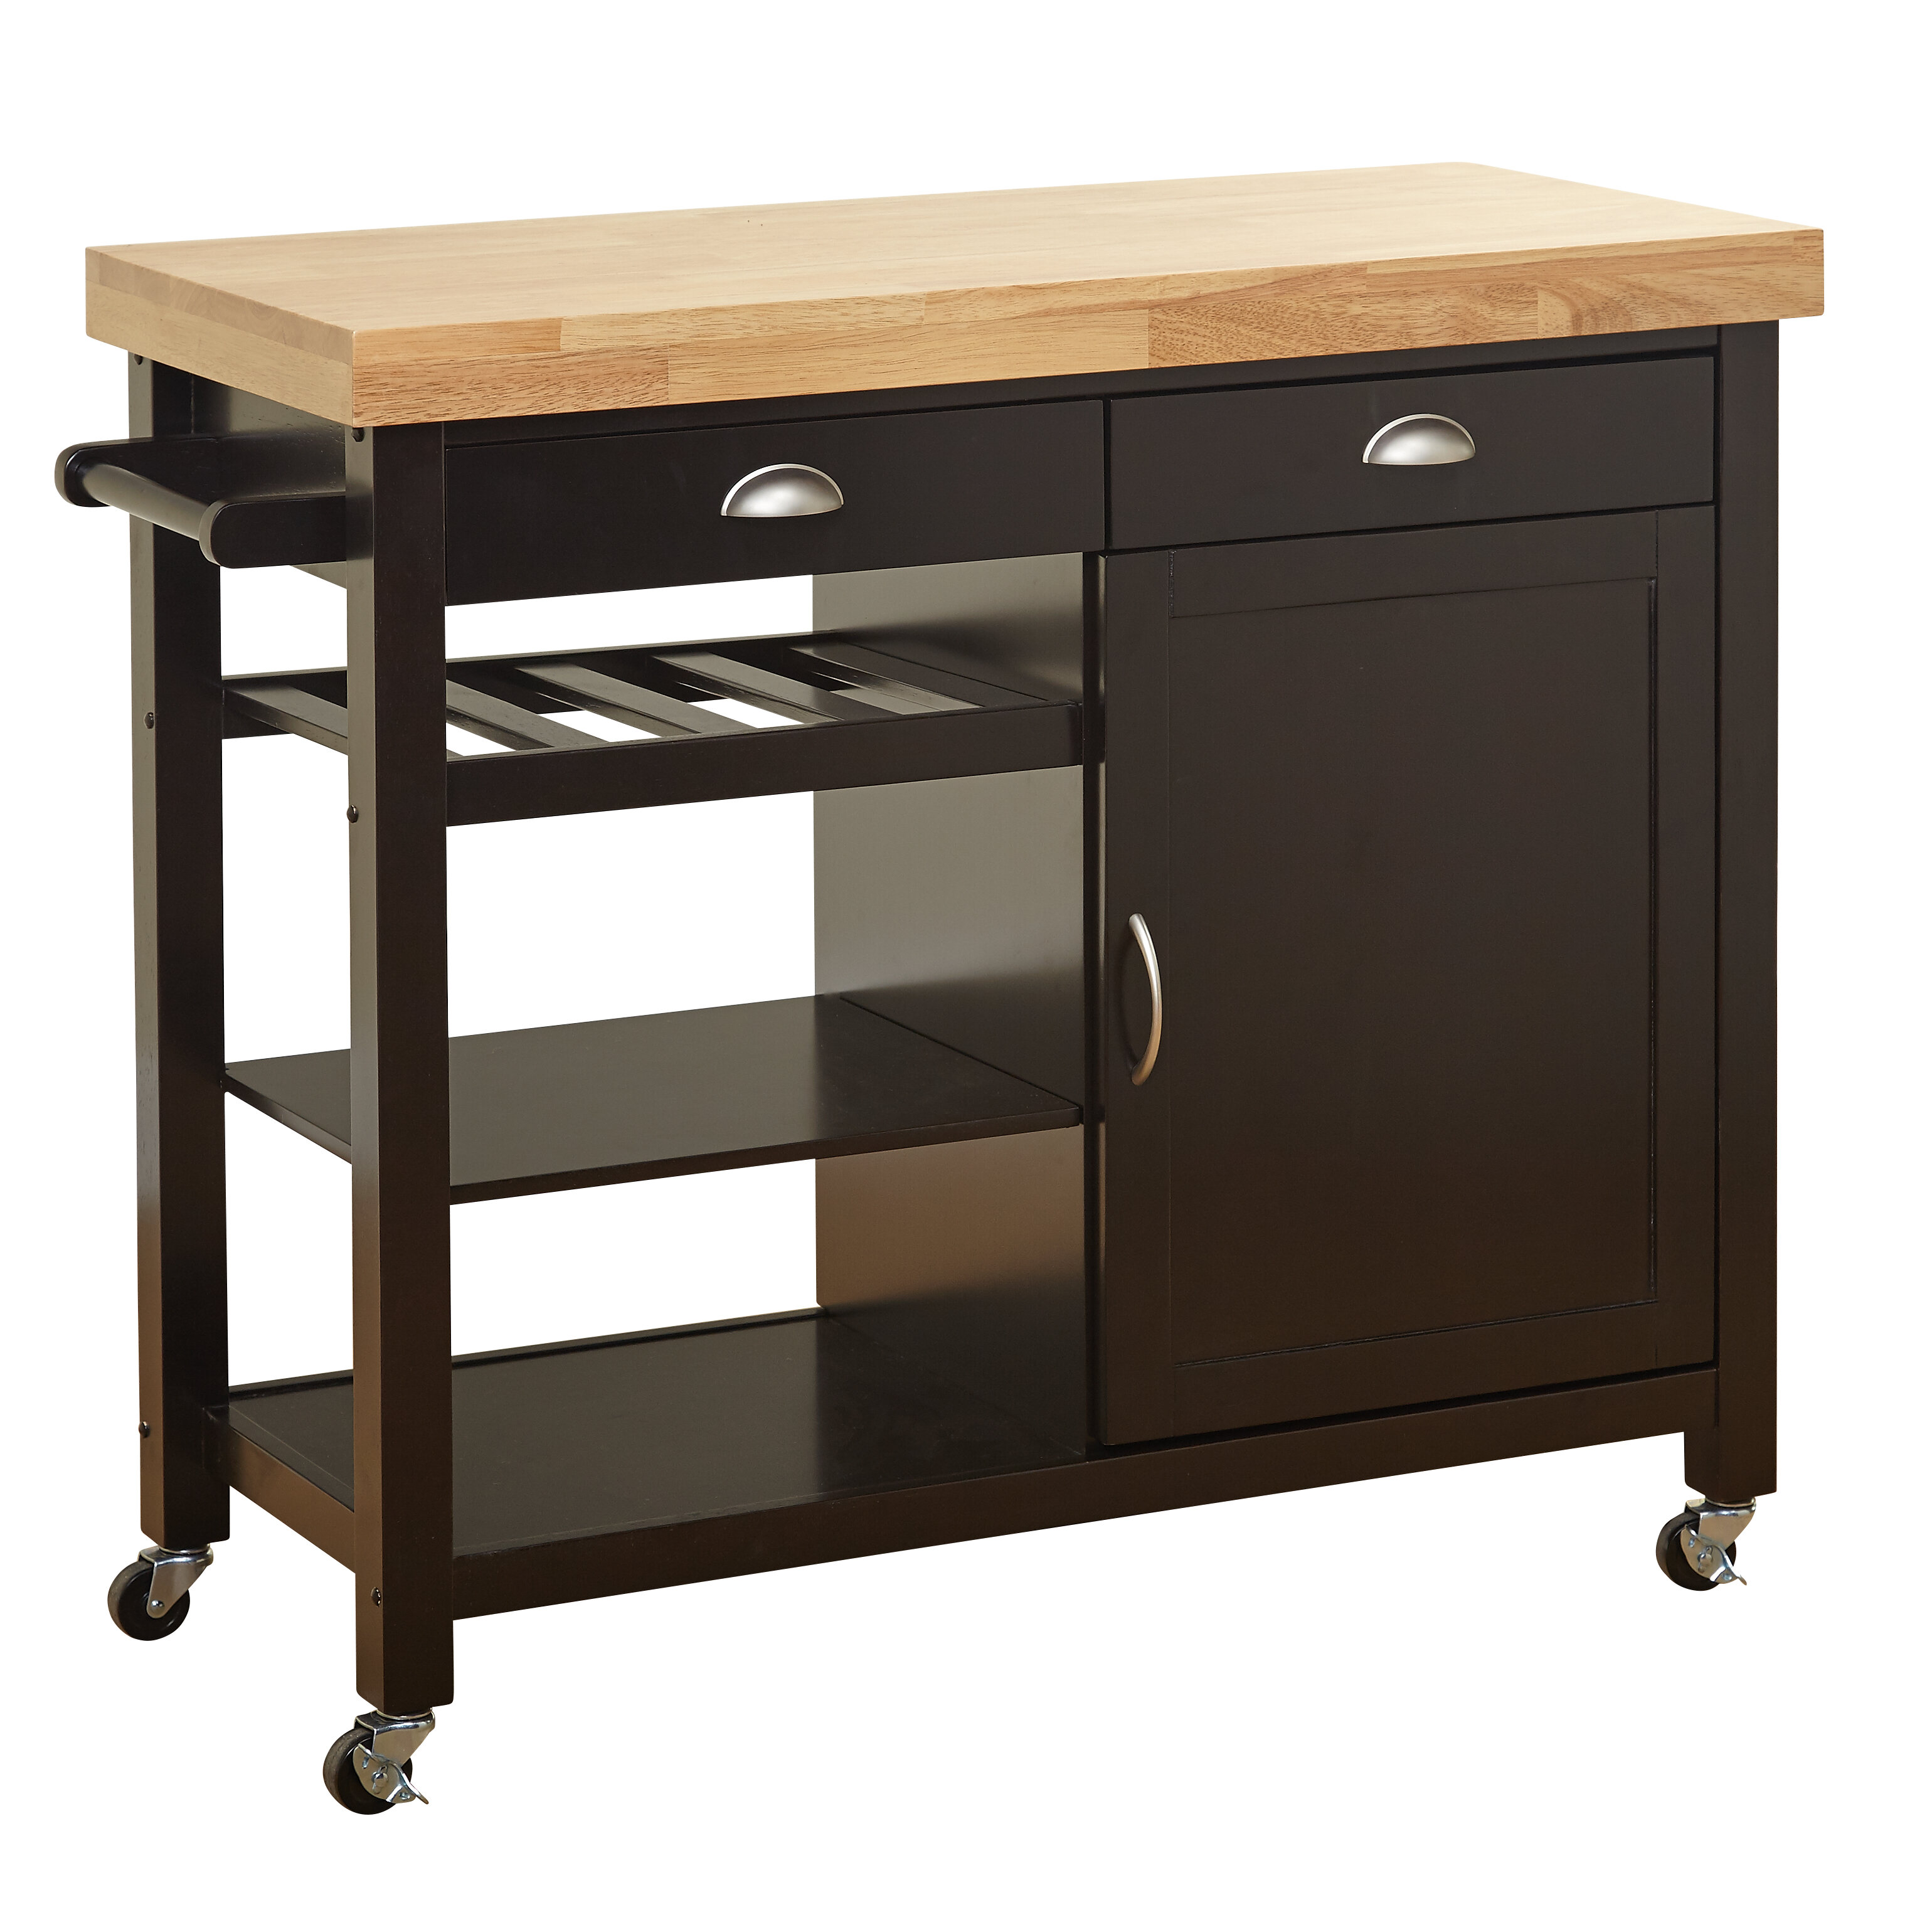 Prime Nathaly Kitchen Cart With Wood Top Download Free Architecture Designs Scobabritishbridgeorg